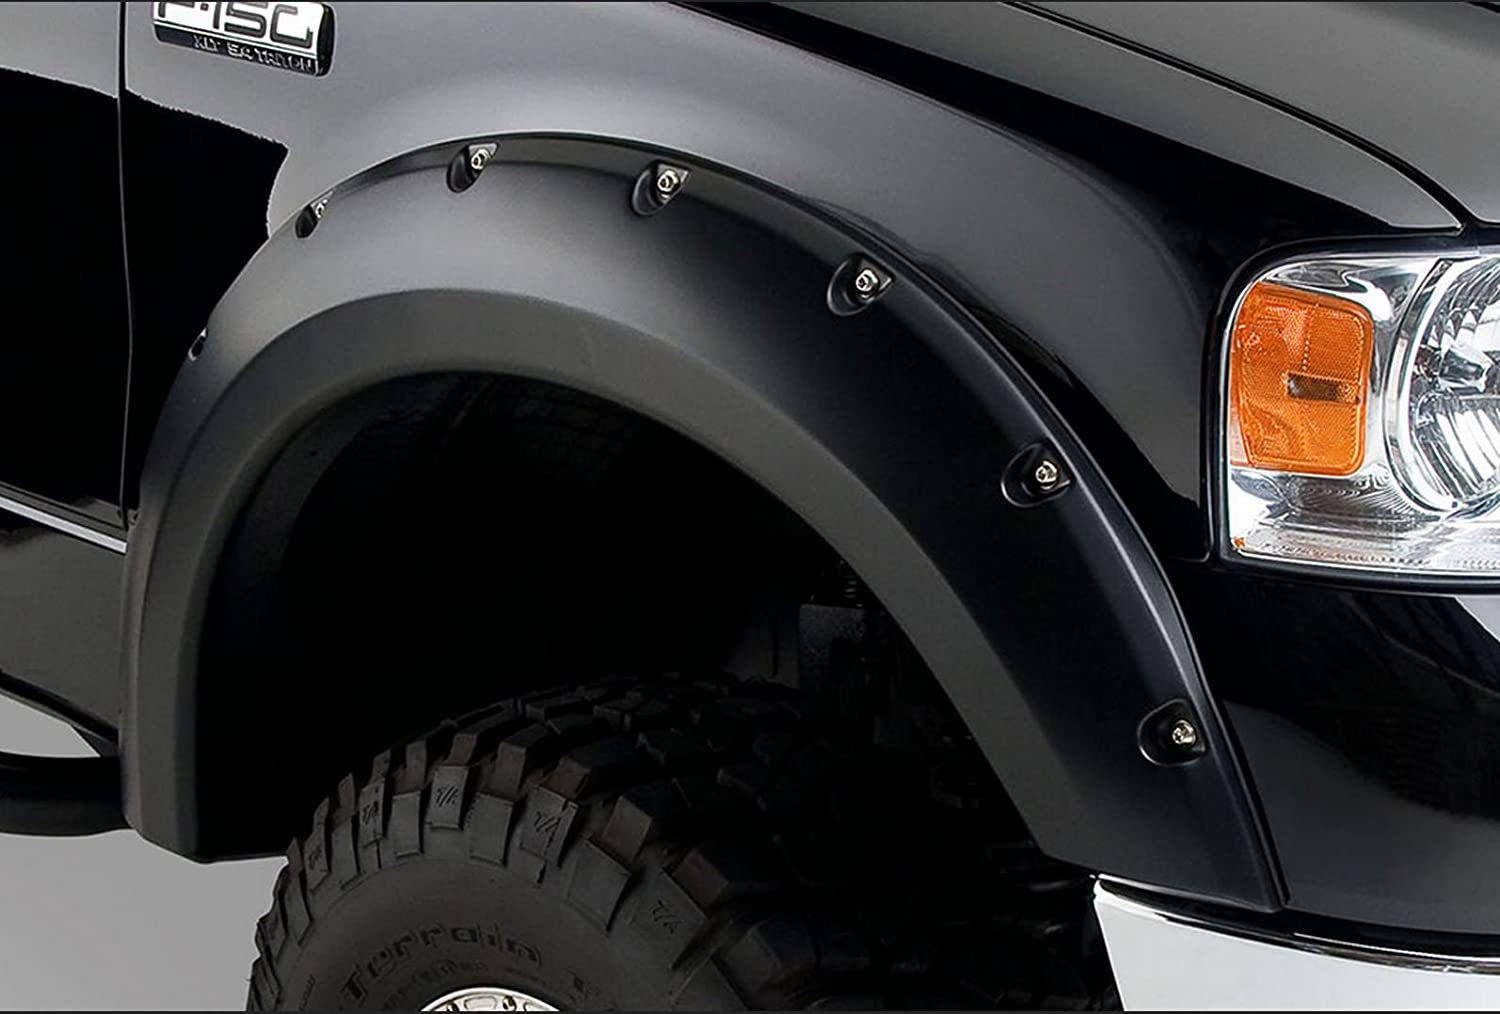 Dura-Flex Pocket Style 4 Piece fender Flares Kit Wheel Cover 2007-2013 GMC Sierra 1500 Fleetside